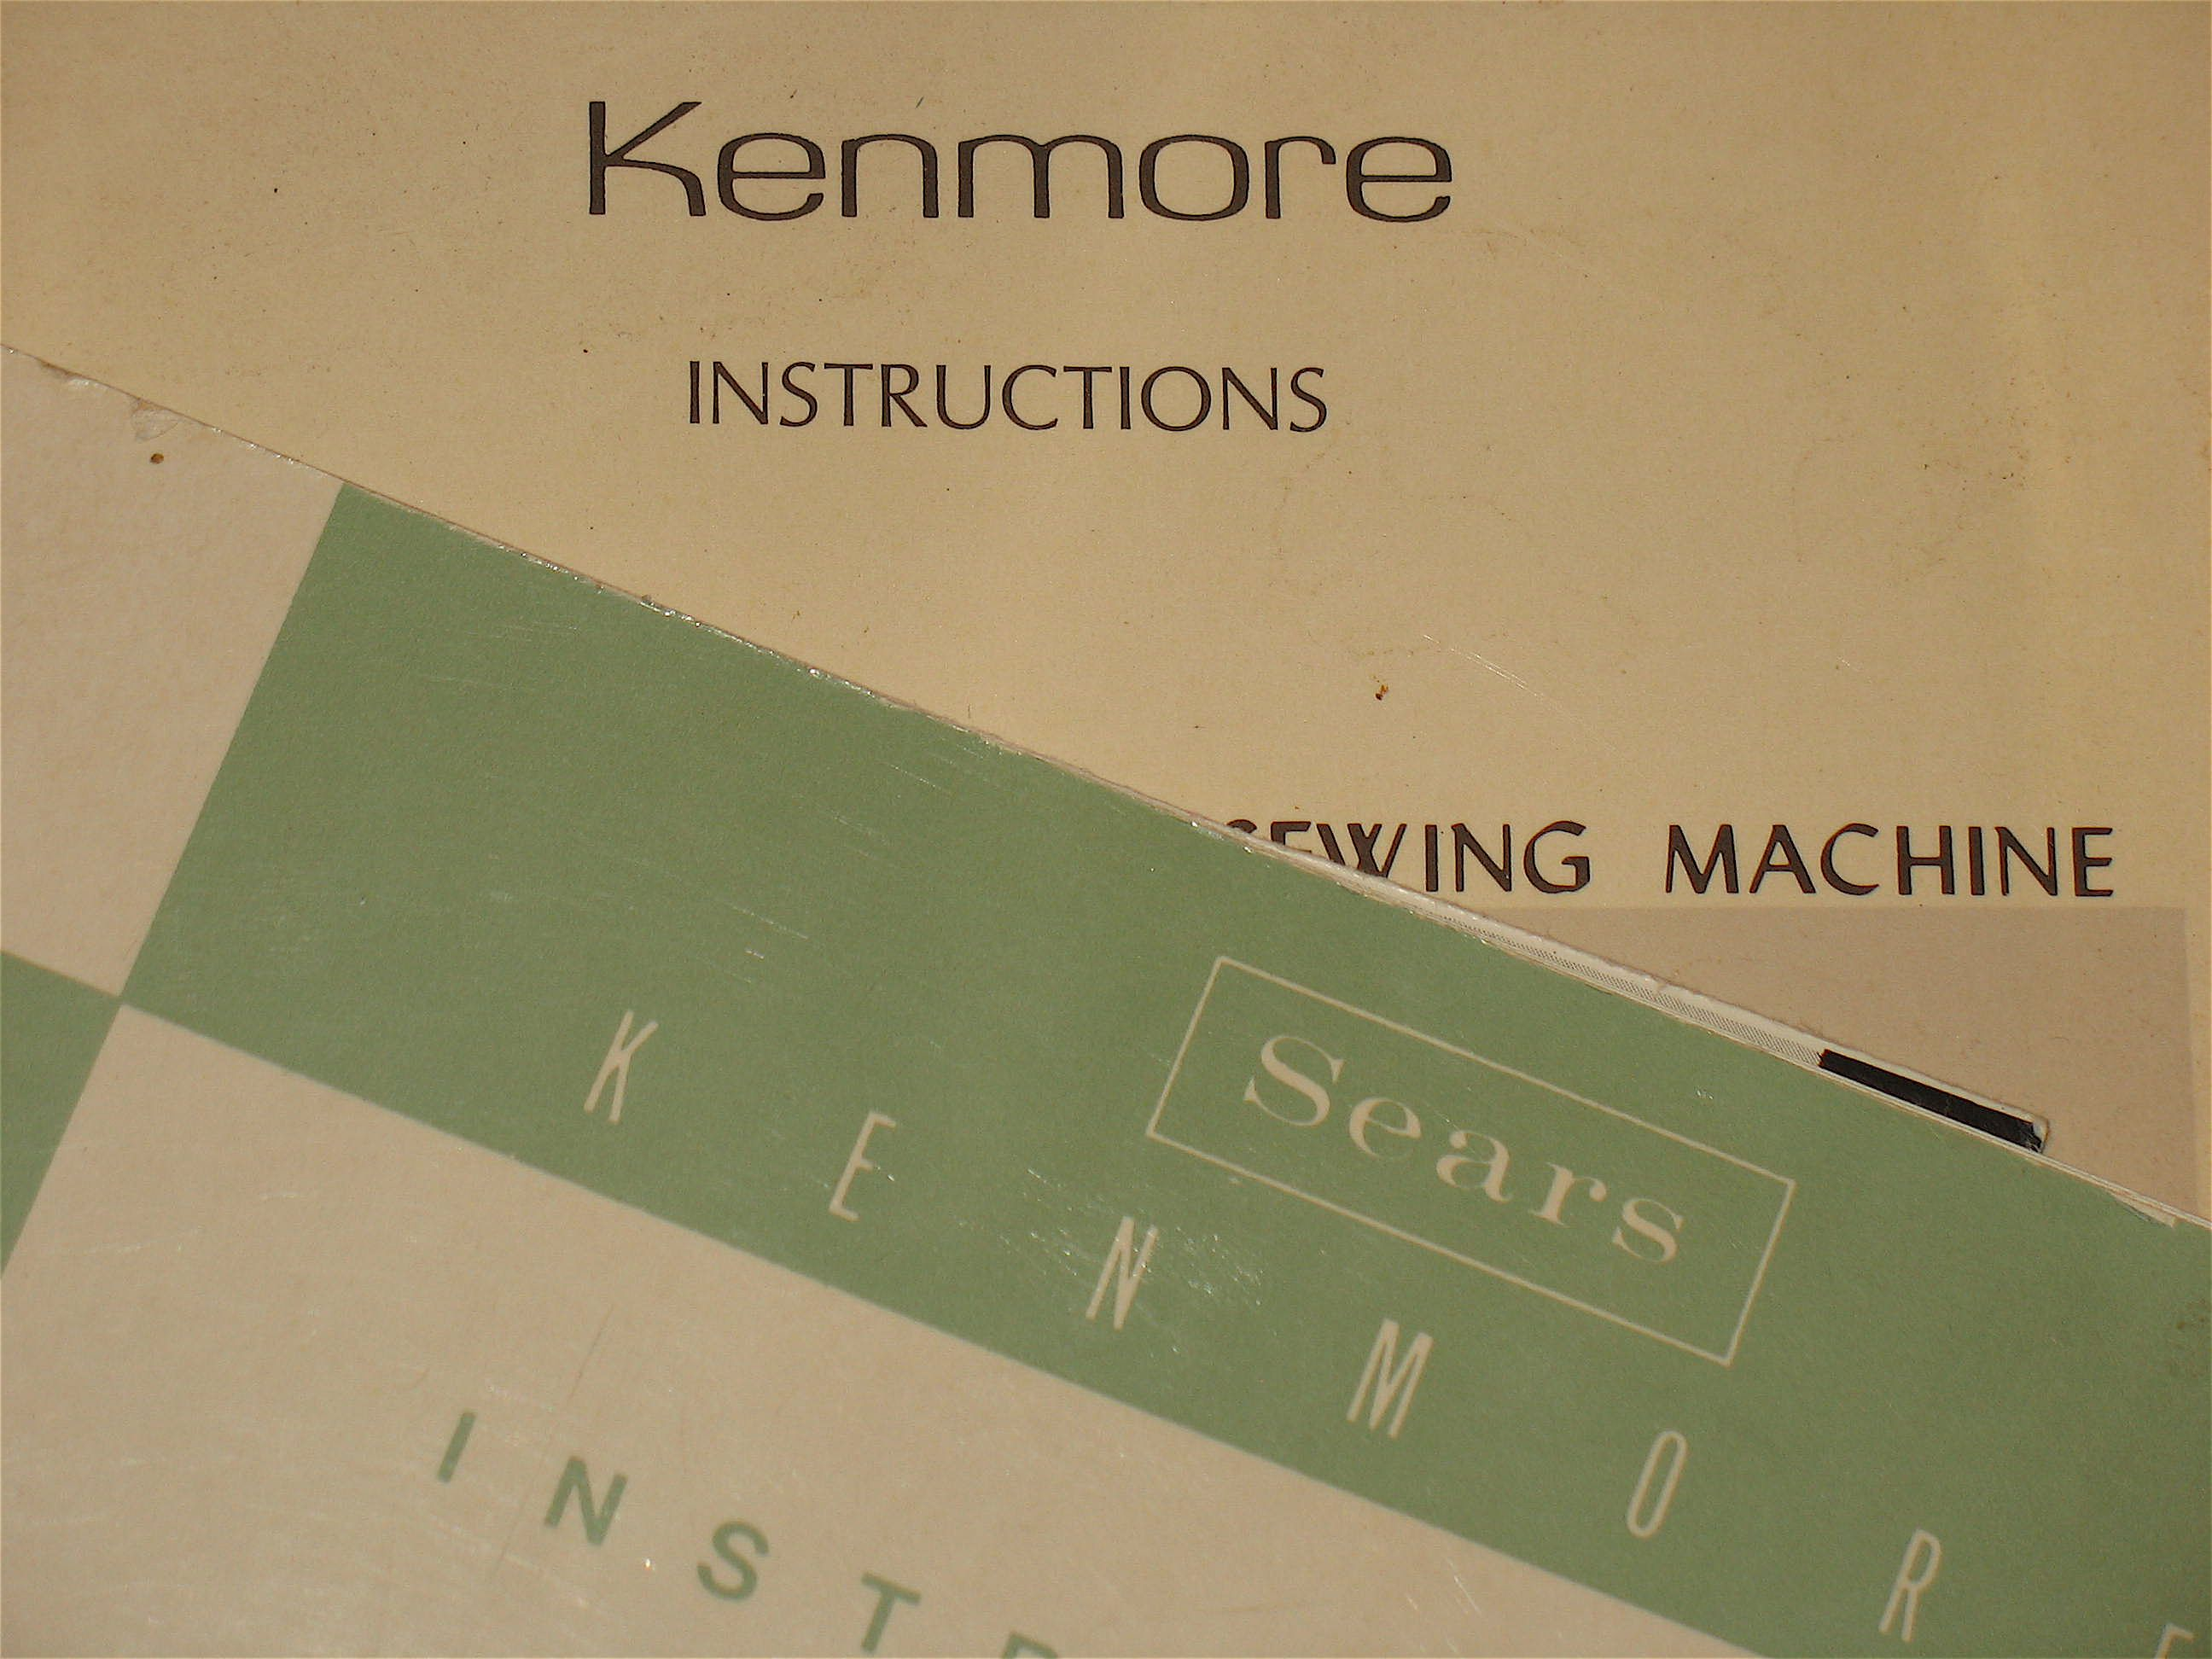 Free Kenmore Sewing Machine Manual!! step by step instructions to access  the manual for FREE on the Sears website :D made my day!!